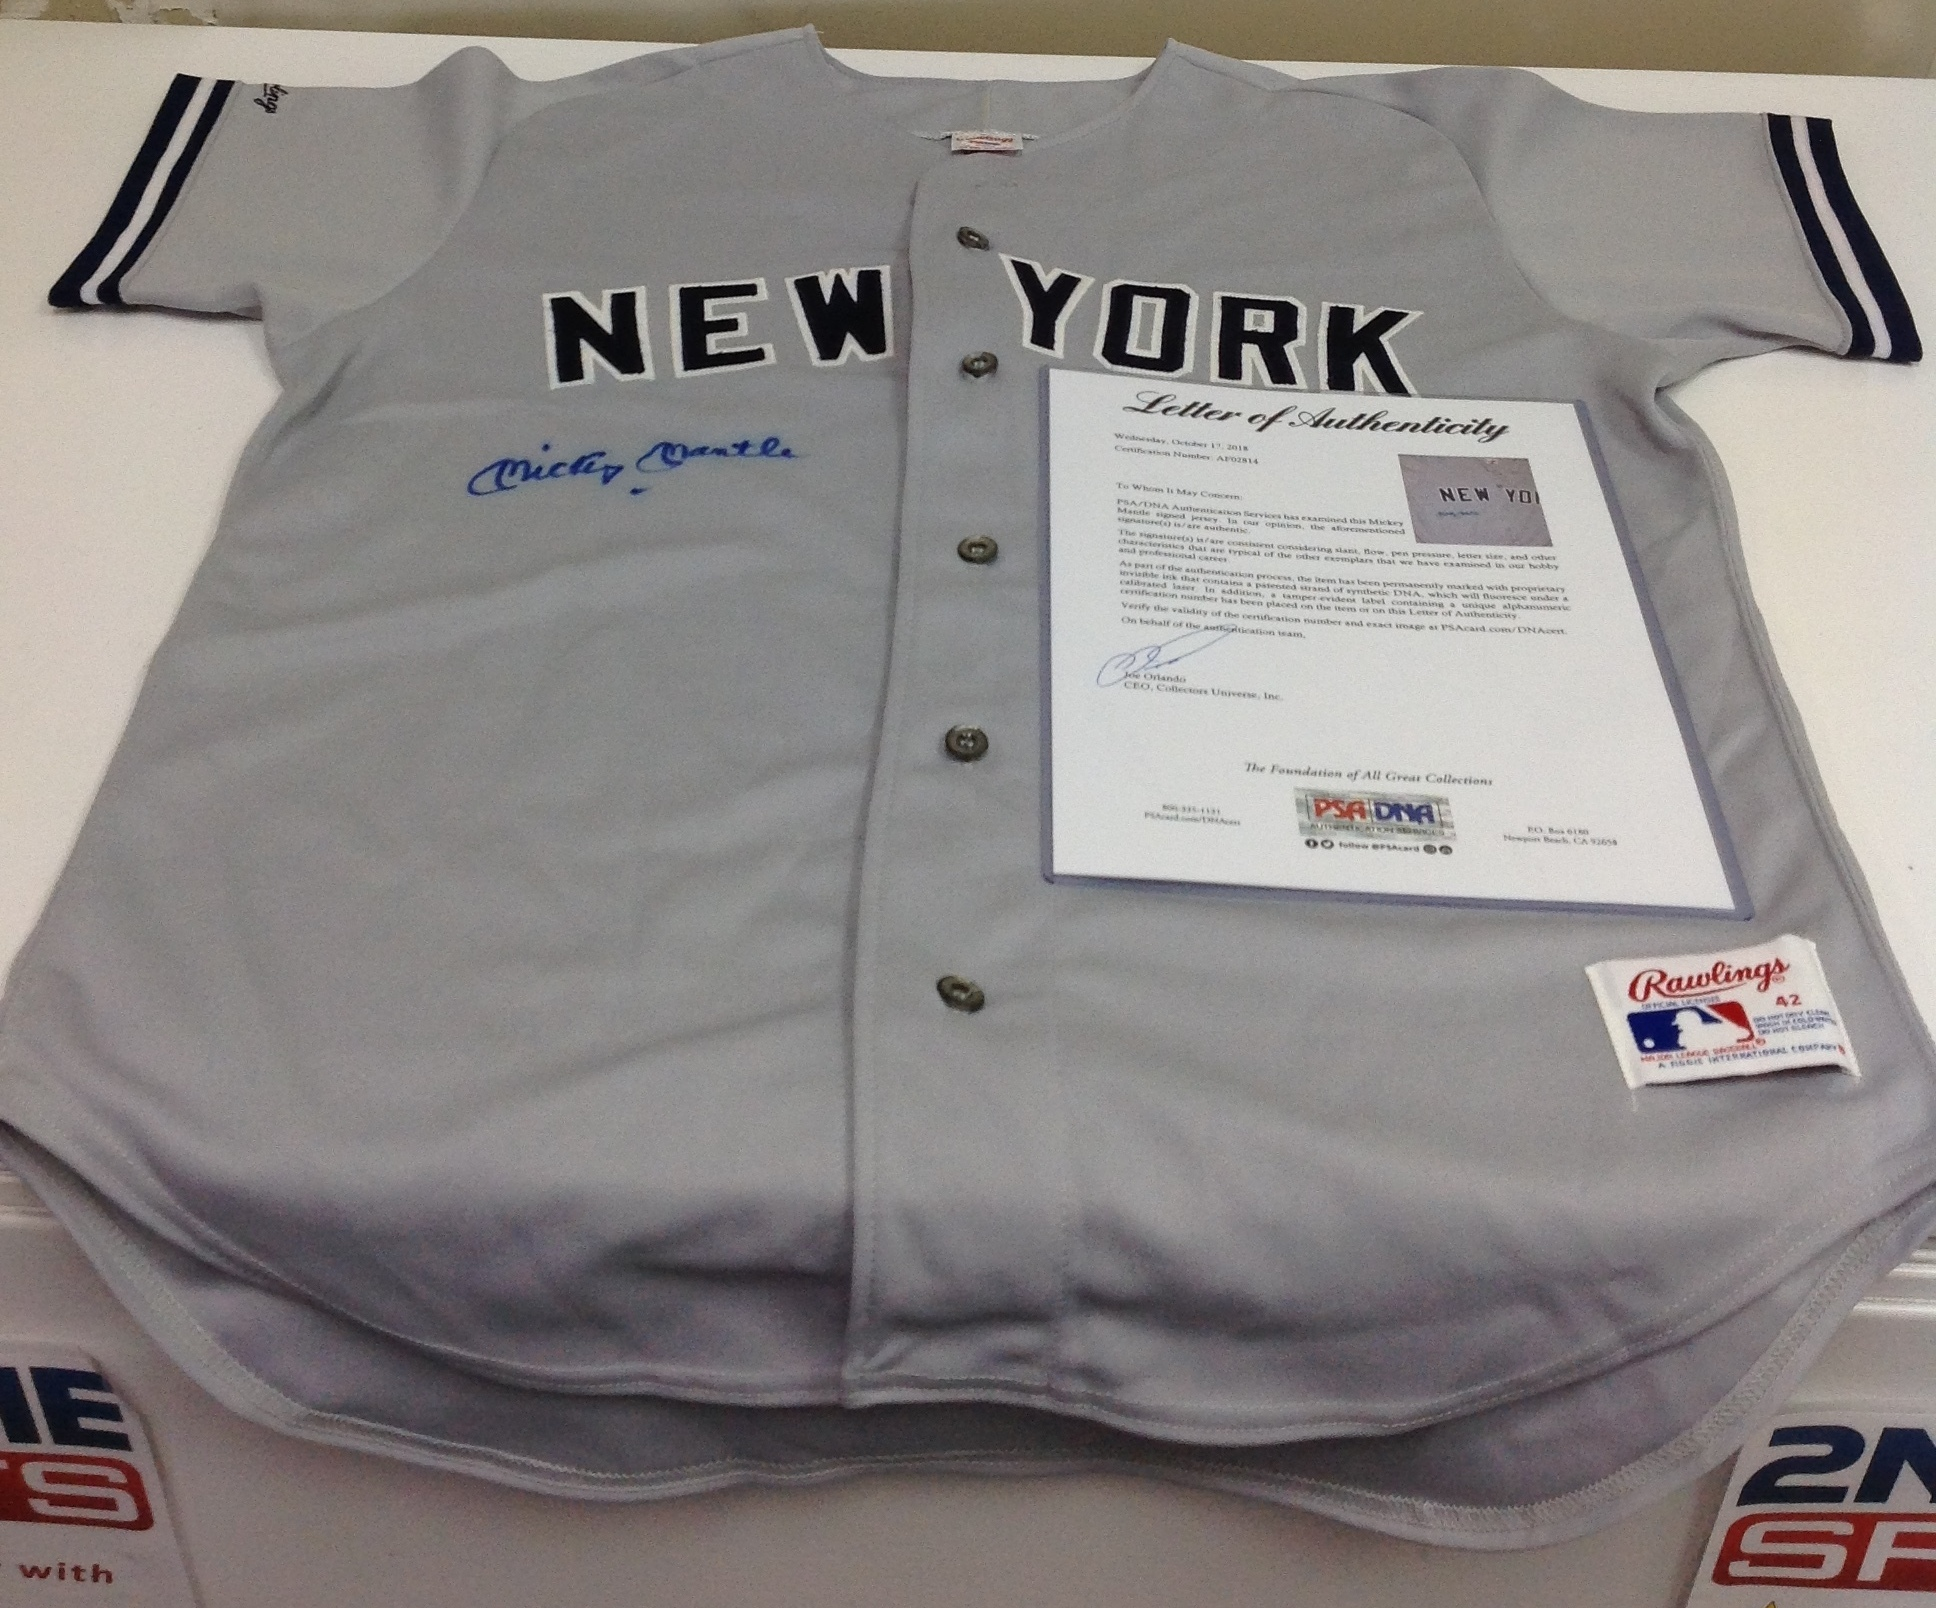 MICKEY MANTLE AUTOGRAPHED NEW YORK YANKEES JERESEY PSA/DNA CERTIFIED